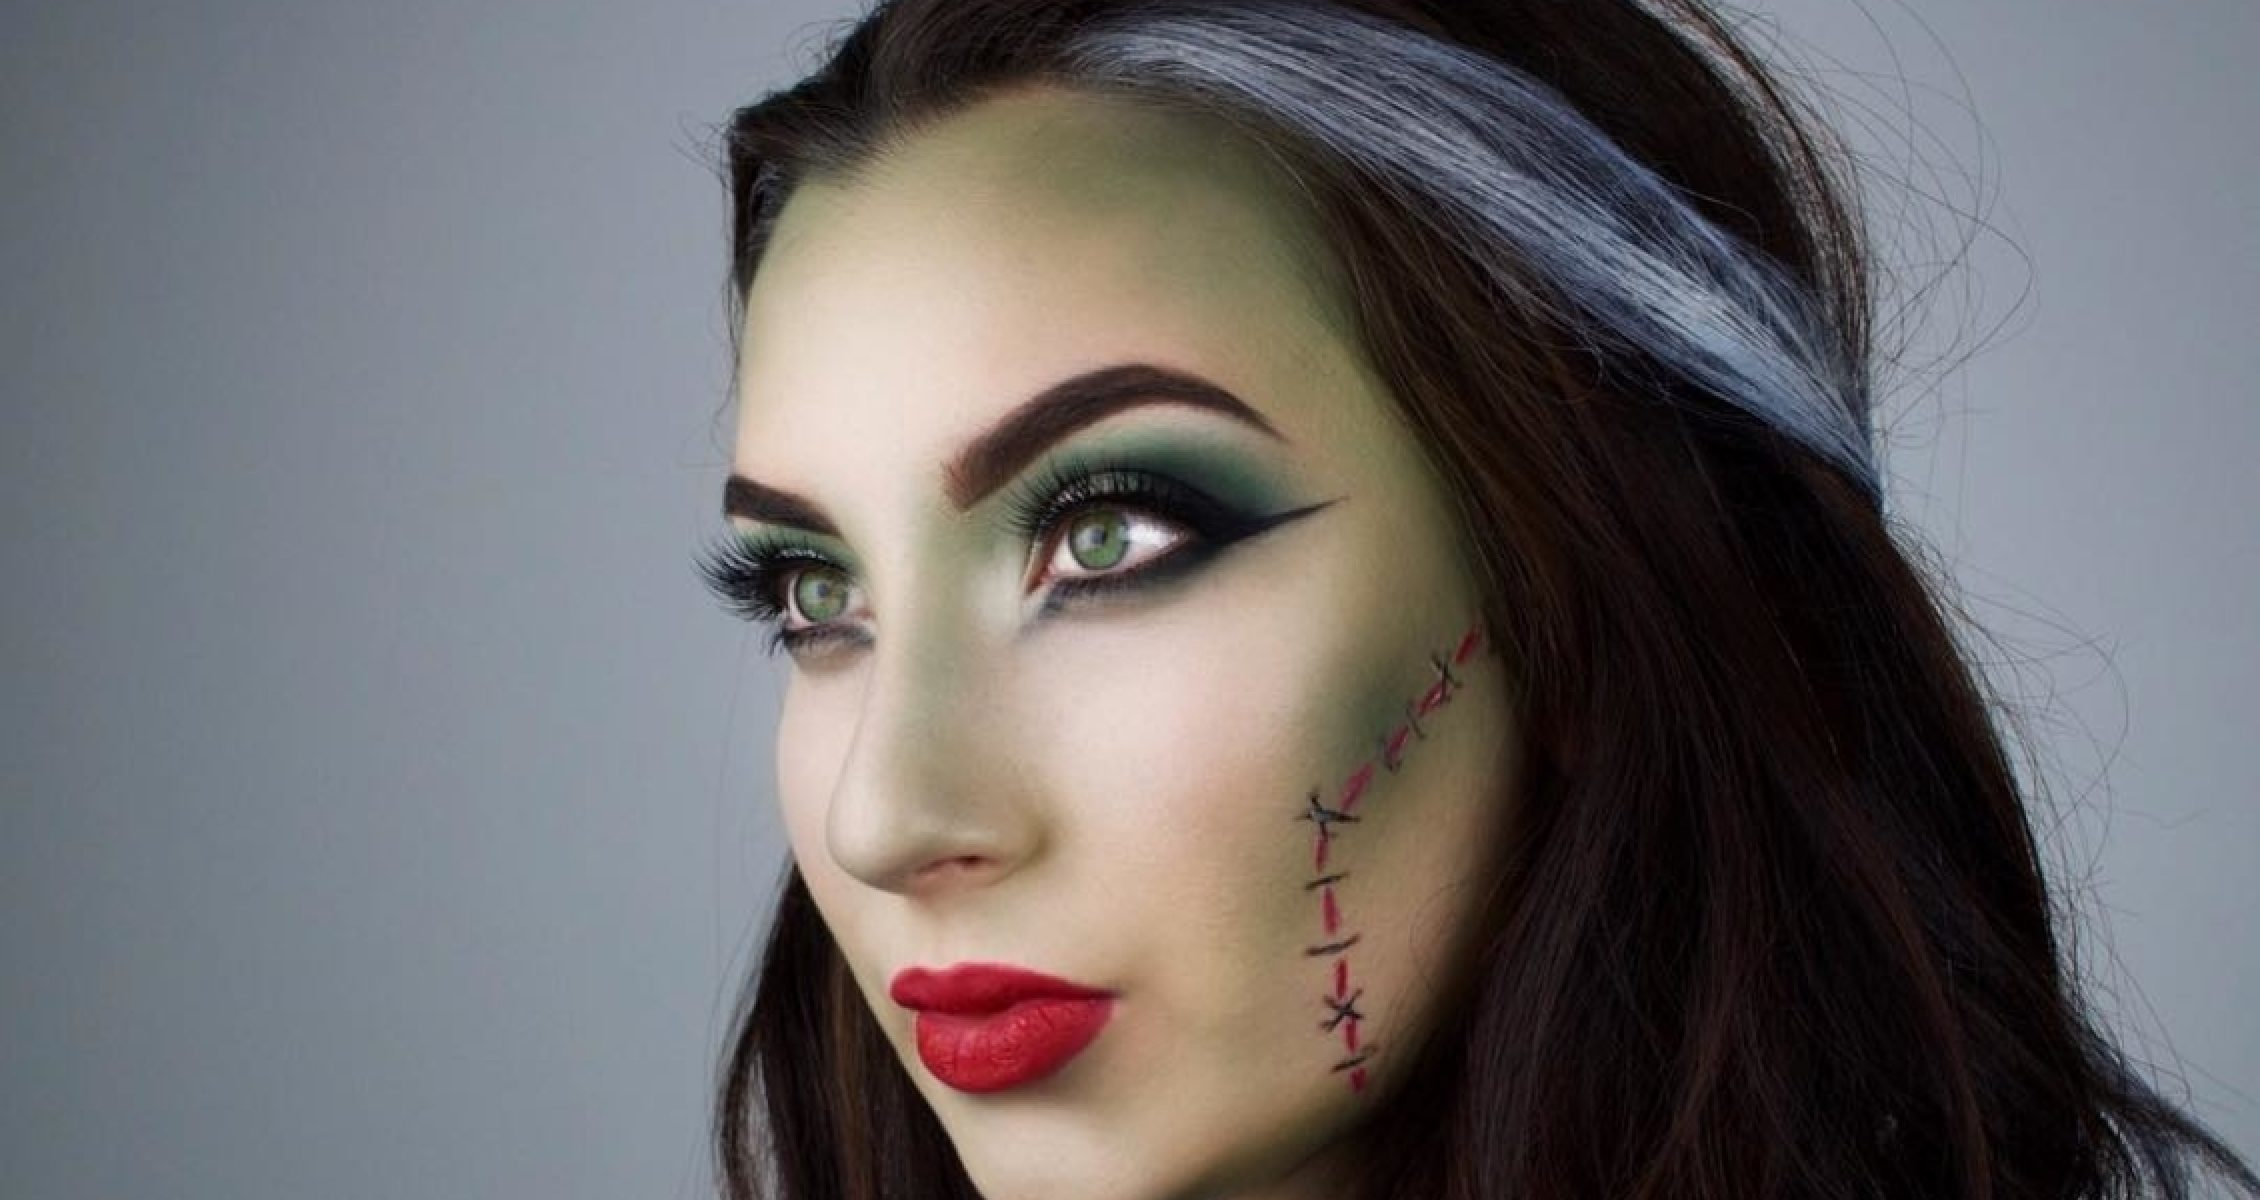 Bride of Frankenstein makeup and hair